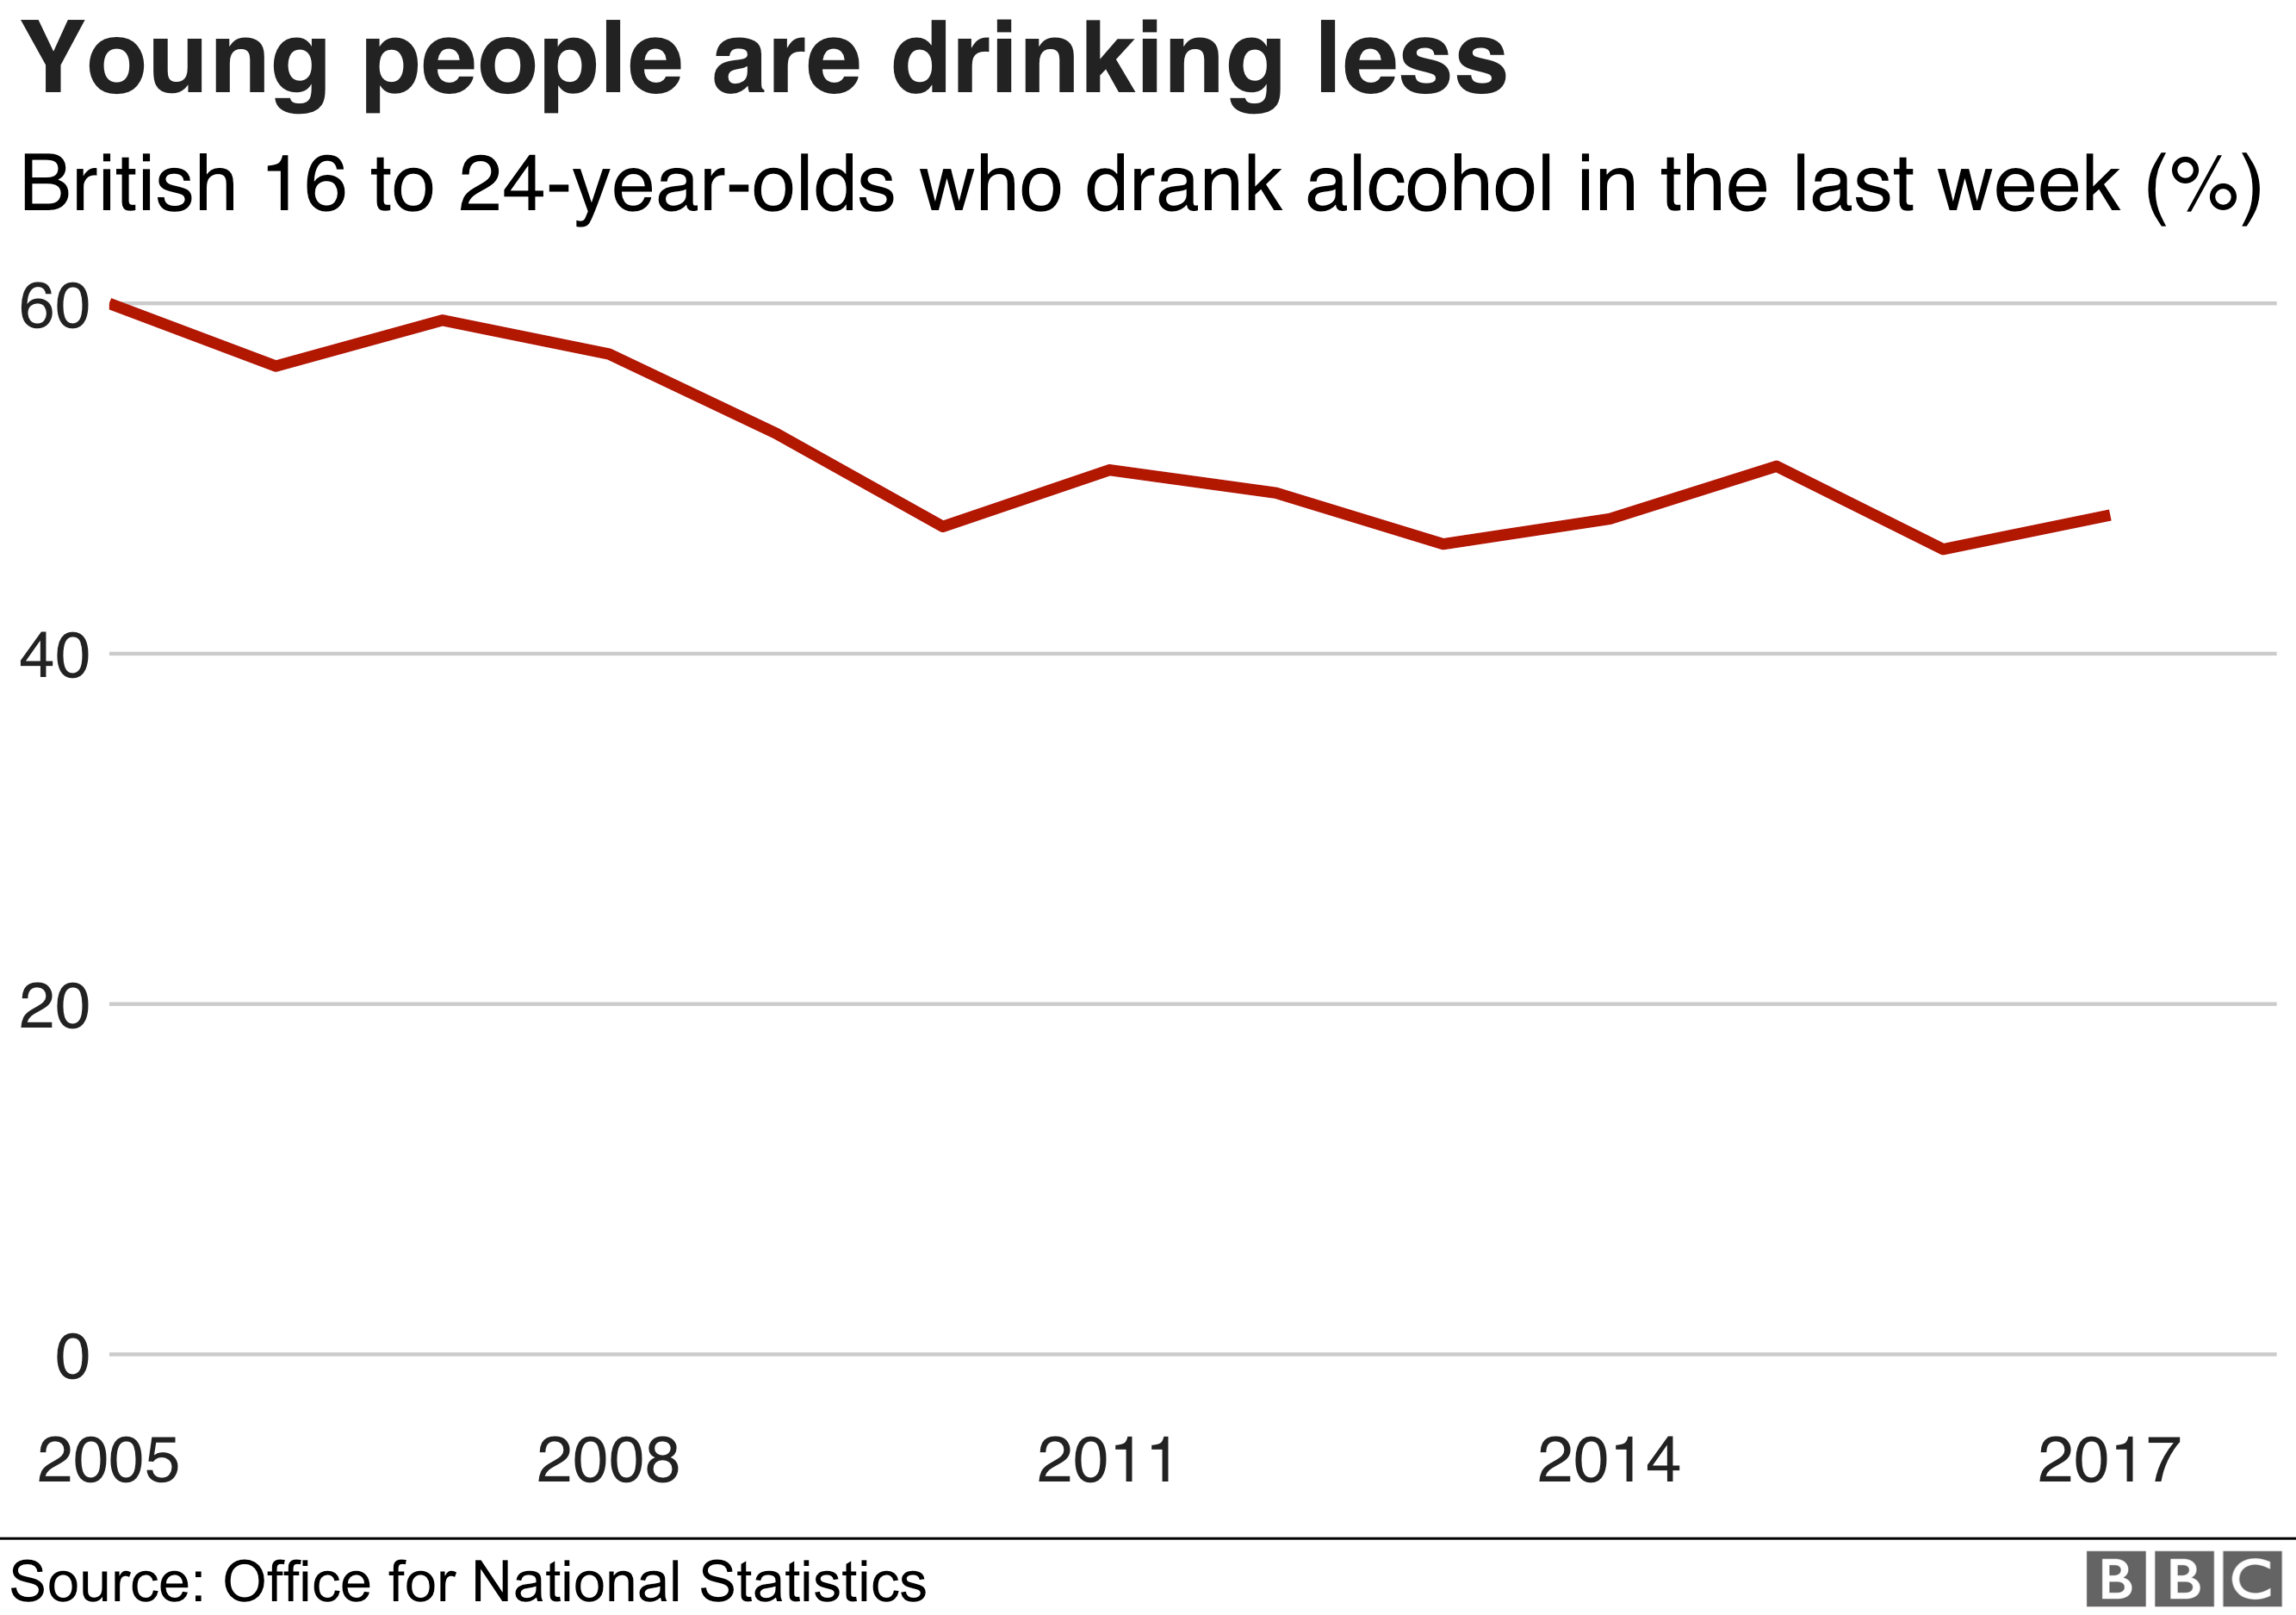 Chart showing the decline of youth drinking